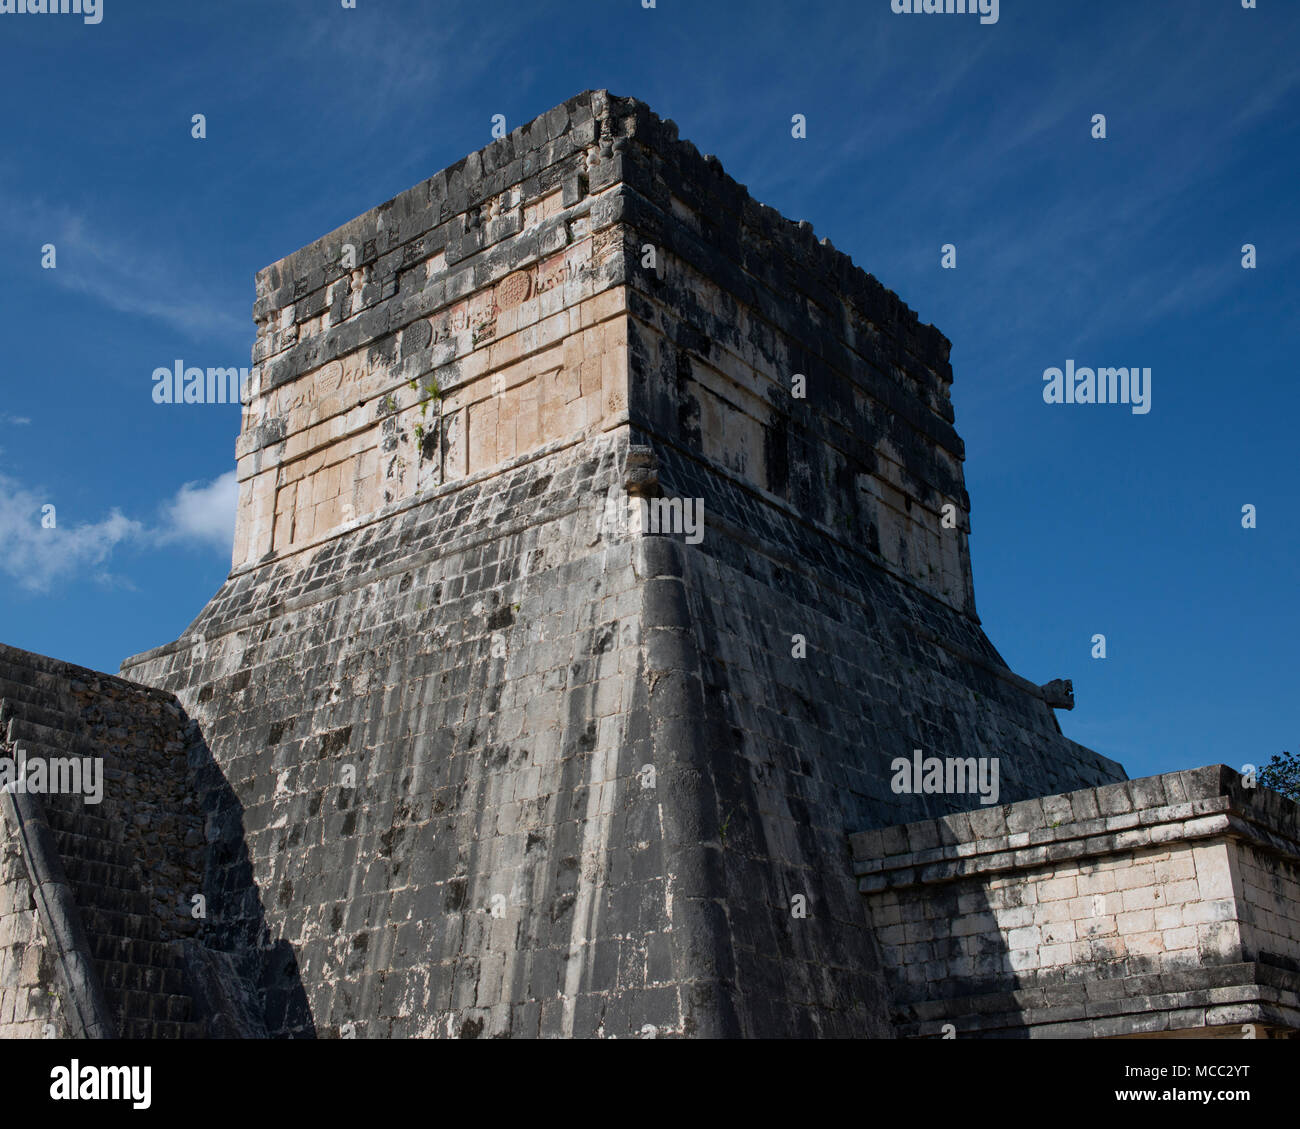 An ancient Mayan temple at Chichén Itzá, Yucatán State, Mexico. Stock Photo